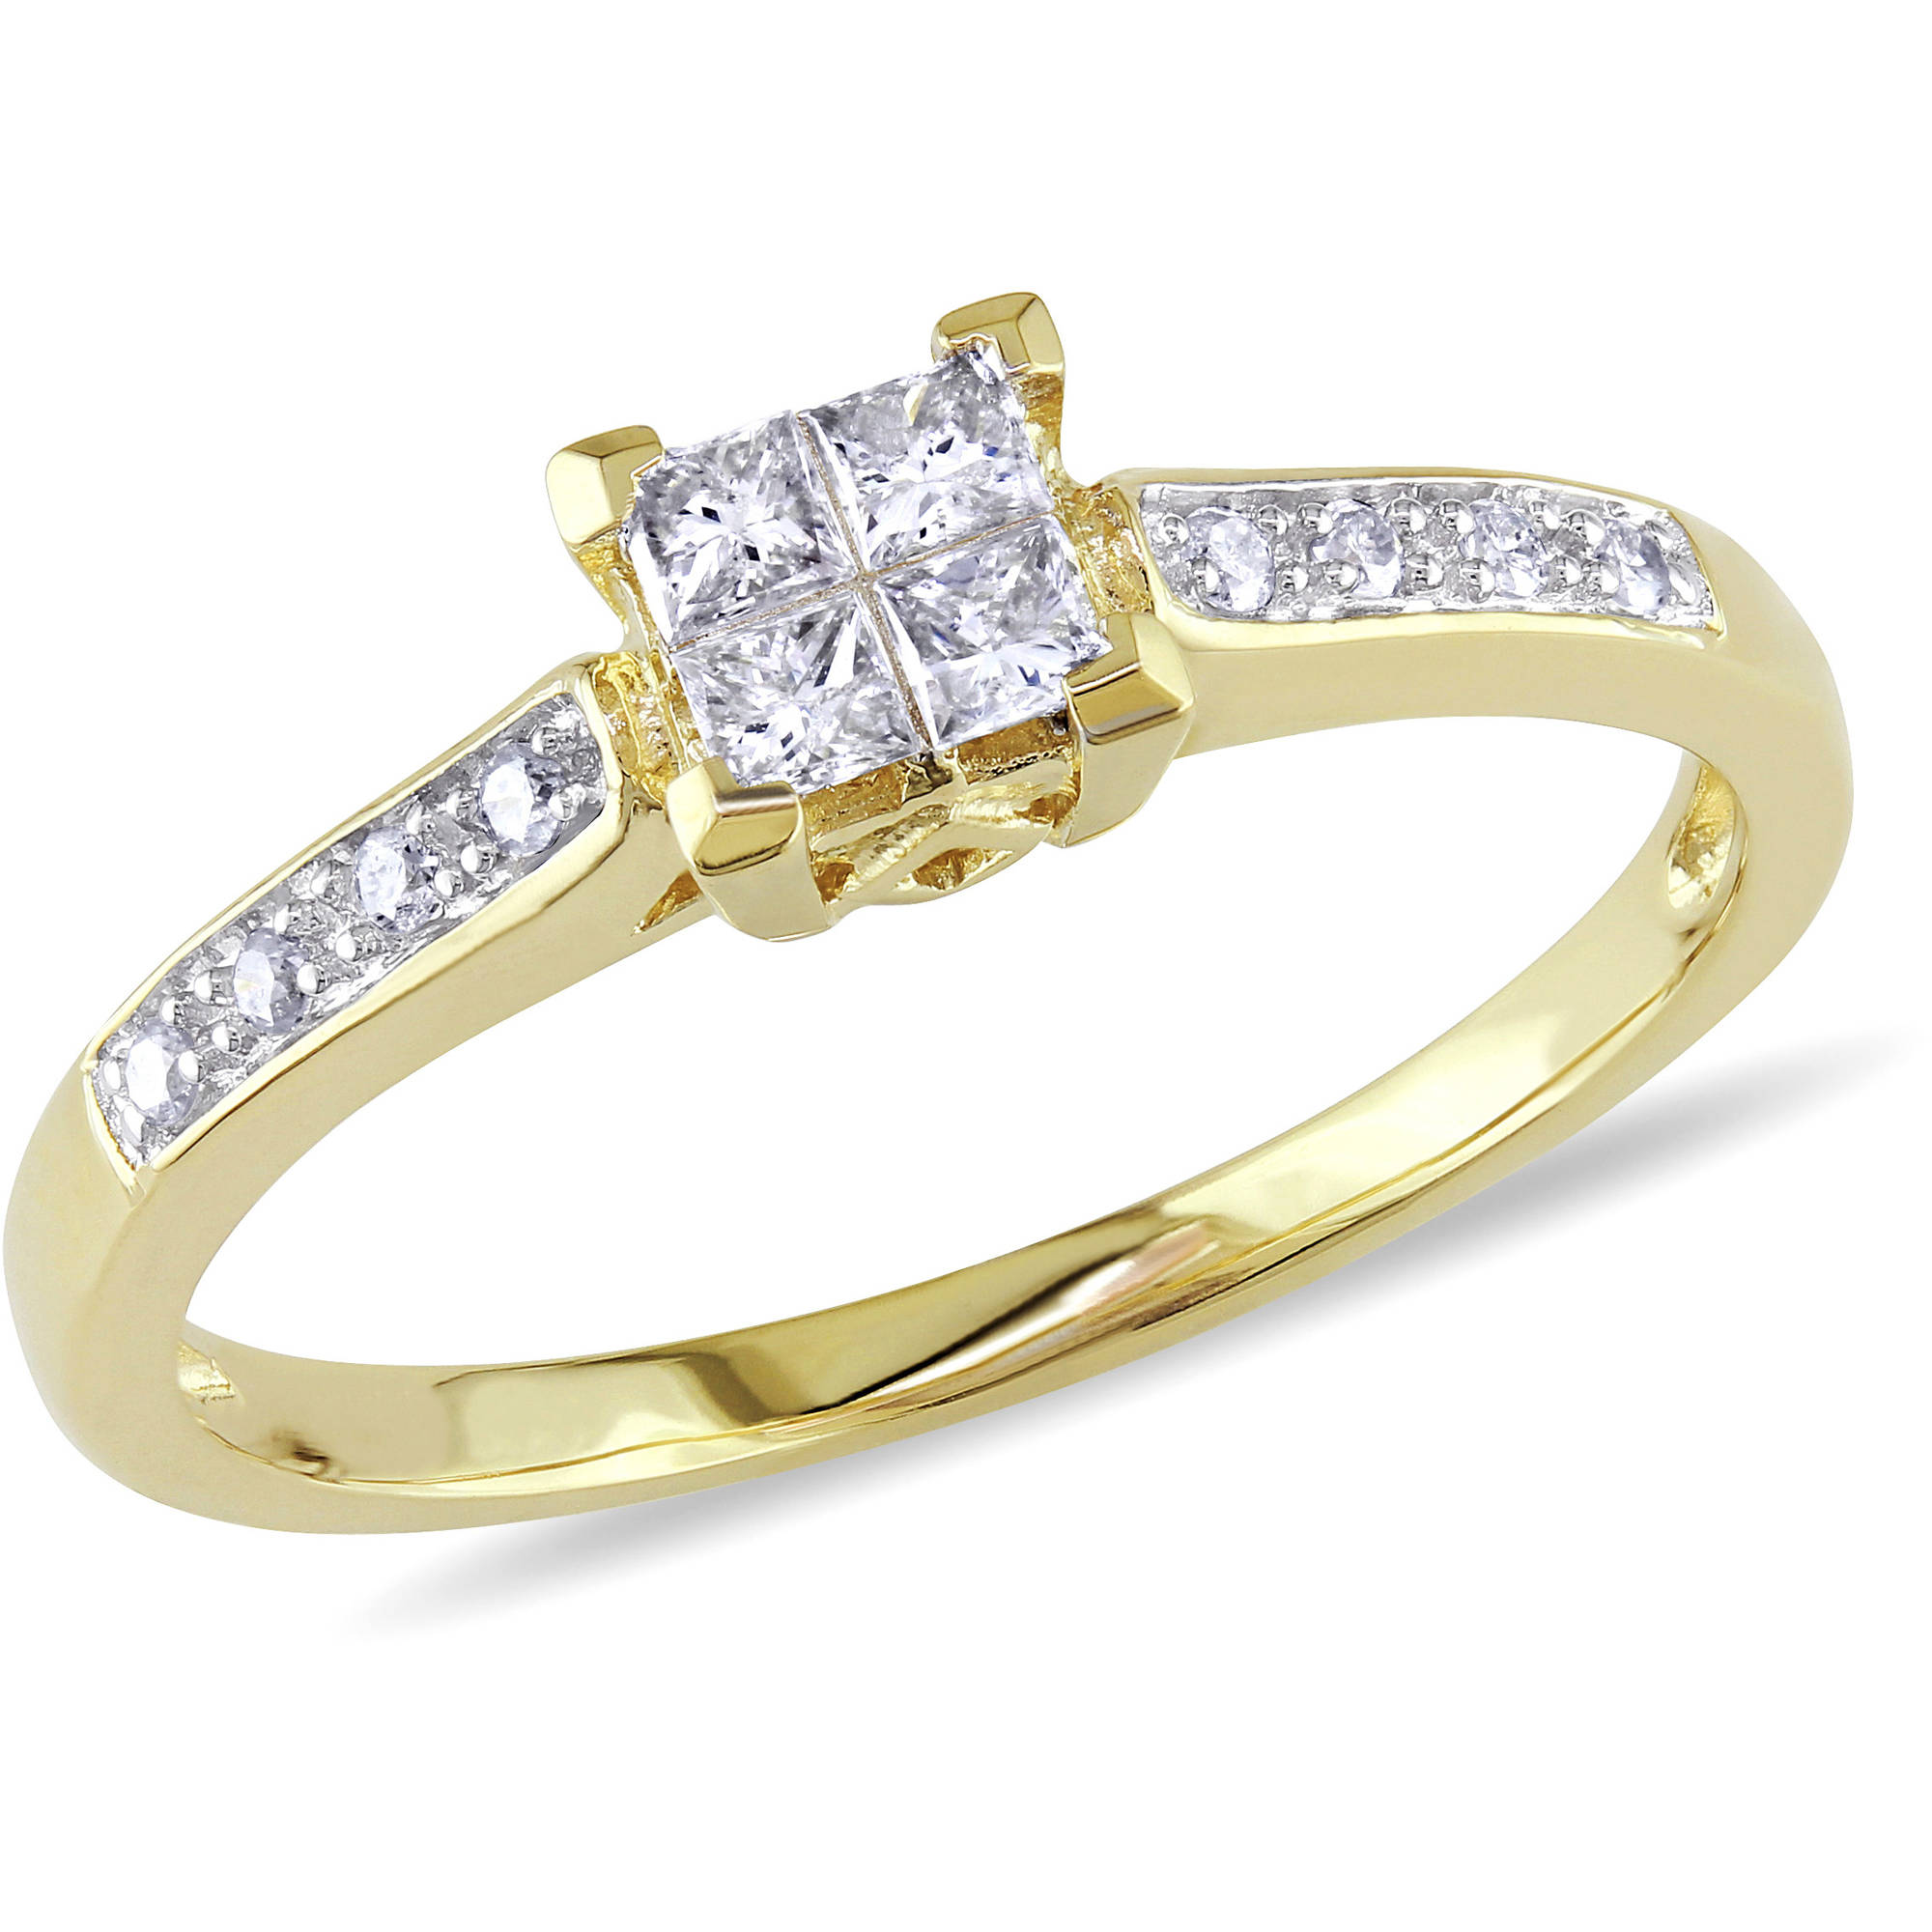 zmyfmwh beautiful diamond ring two engagement miabella wedding clearance gold rings tone promise